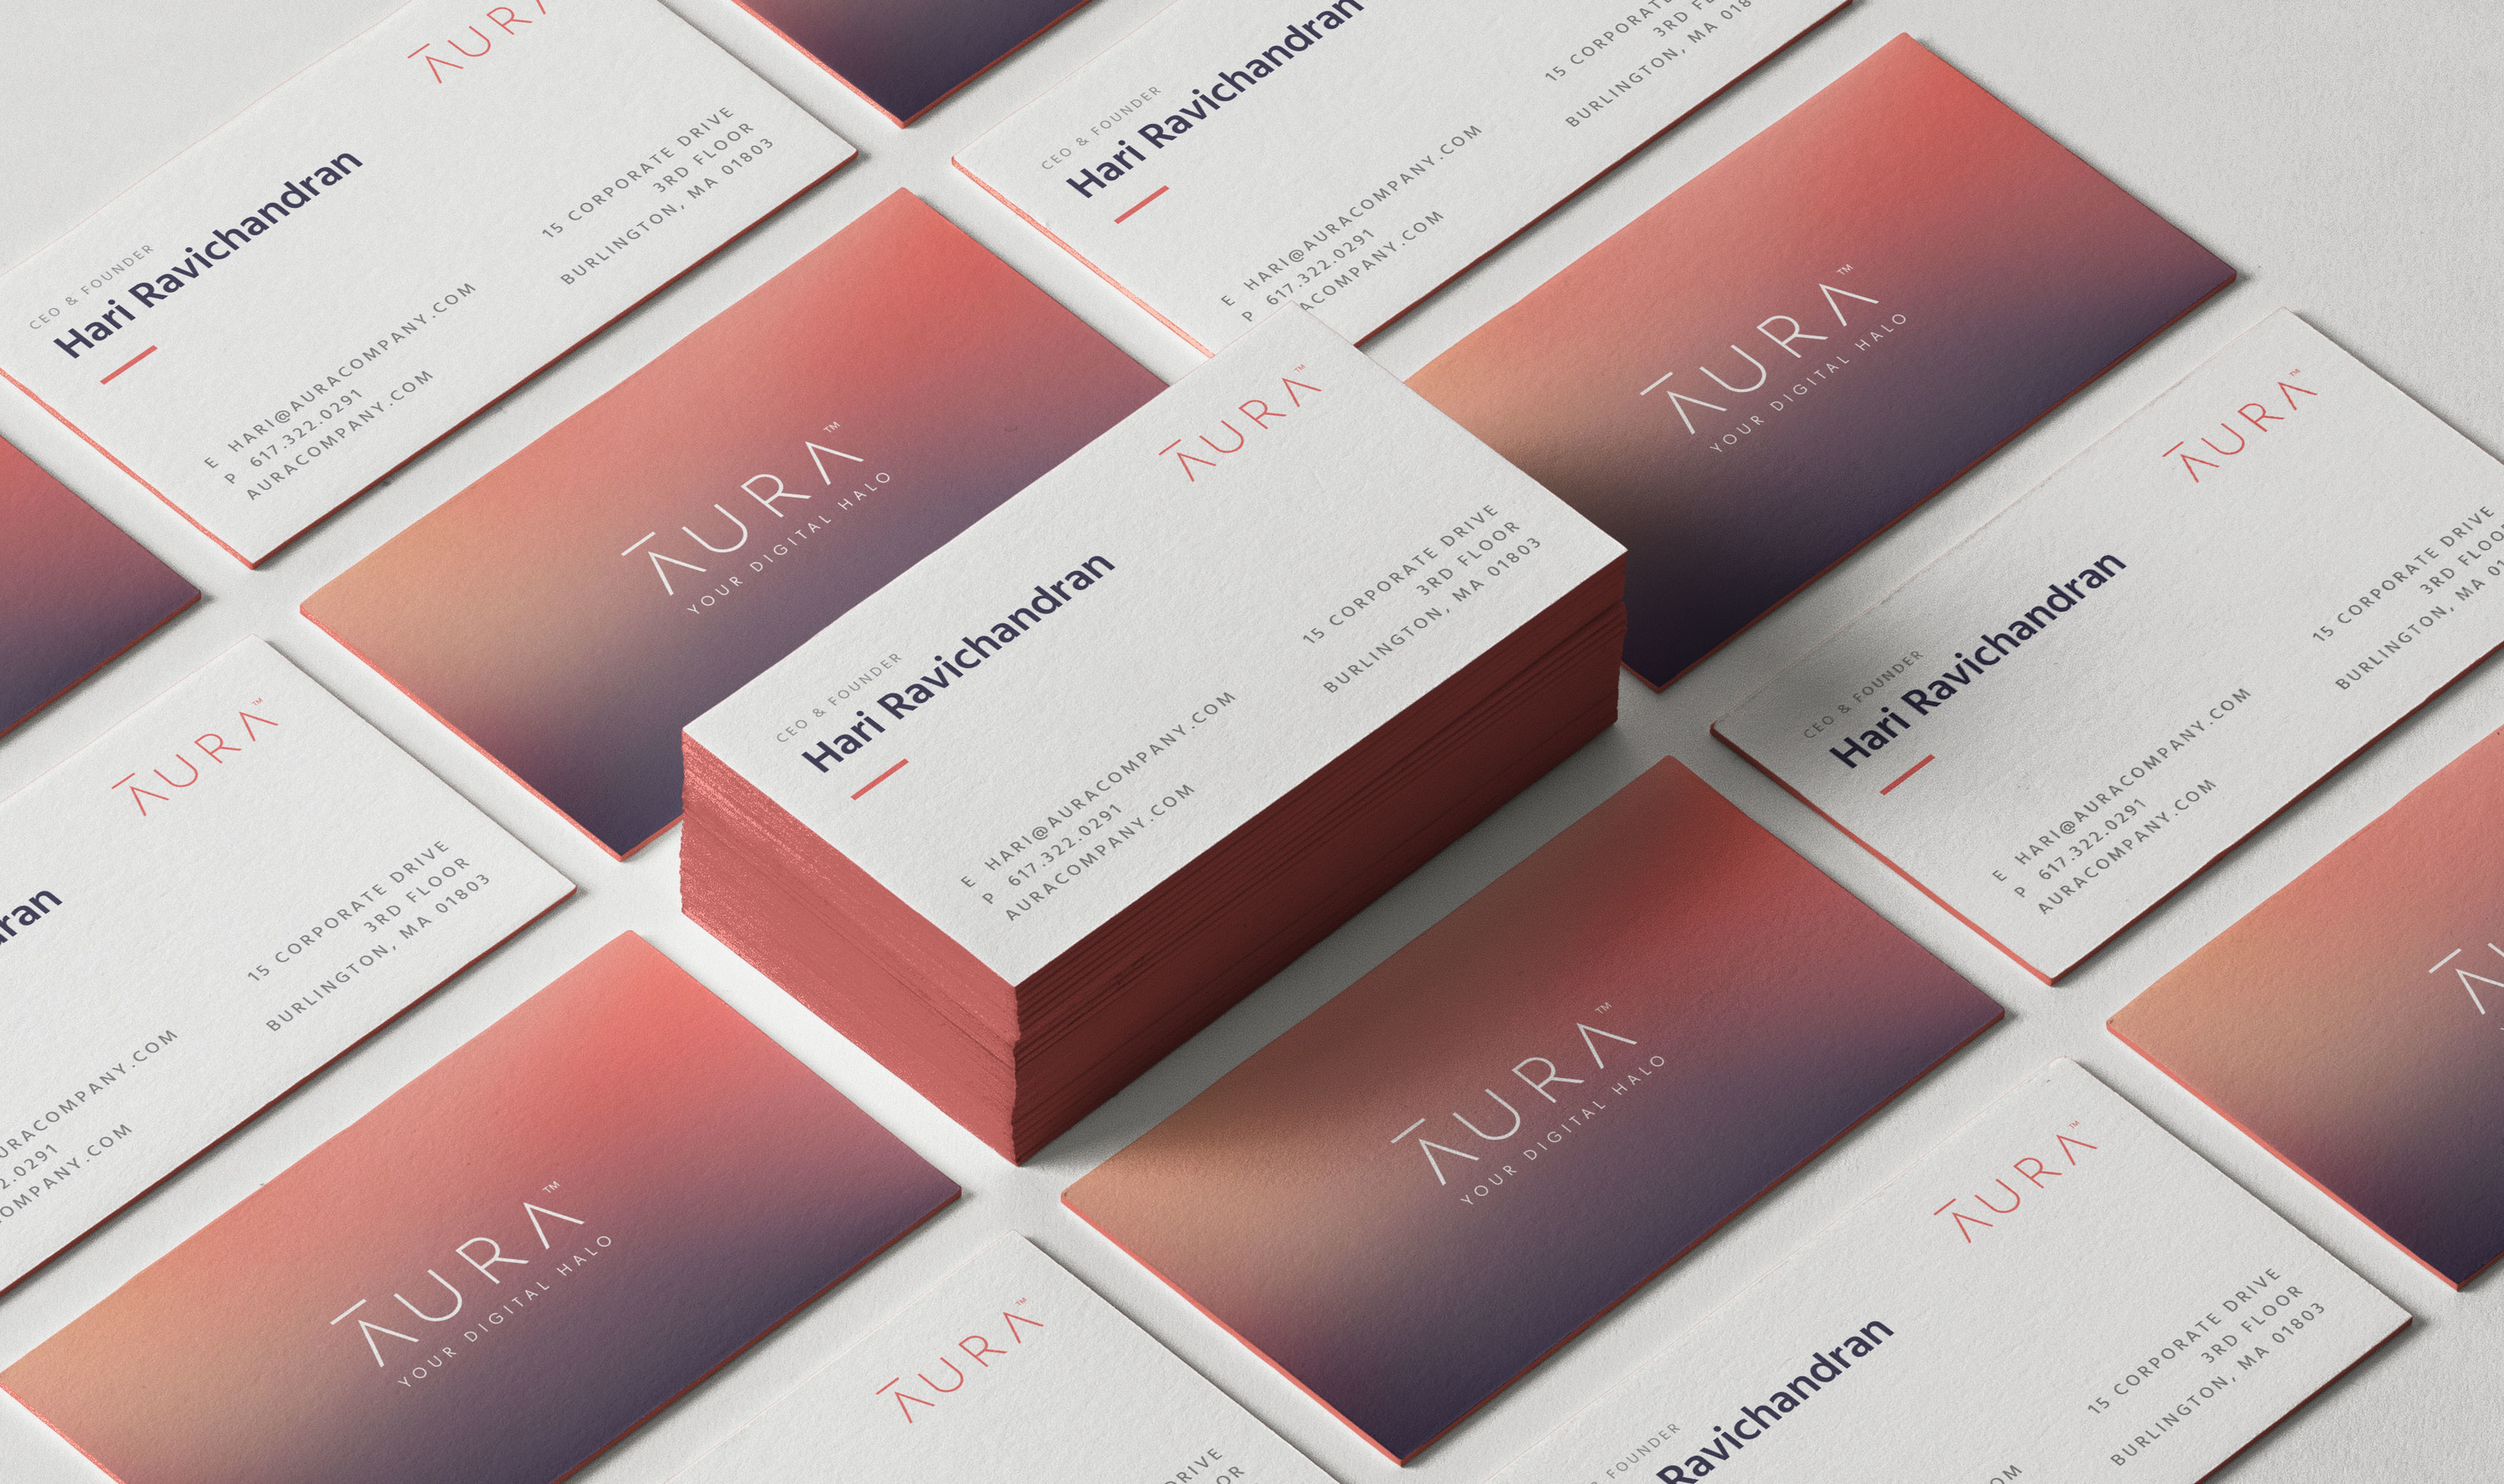 Aura: A more human cyber security brand